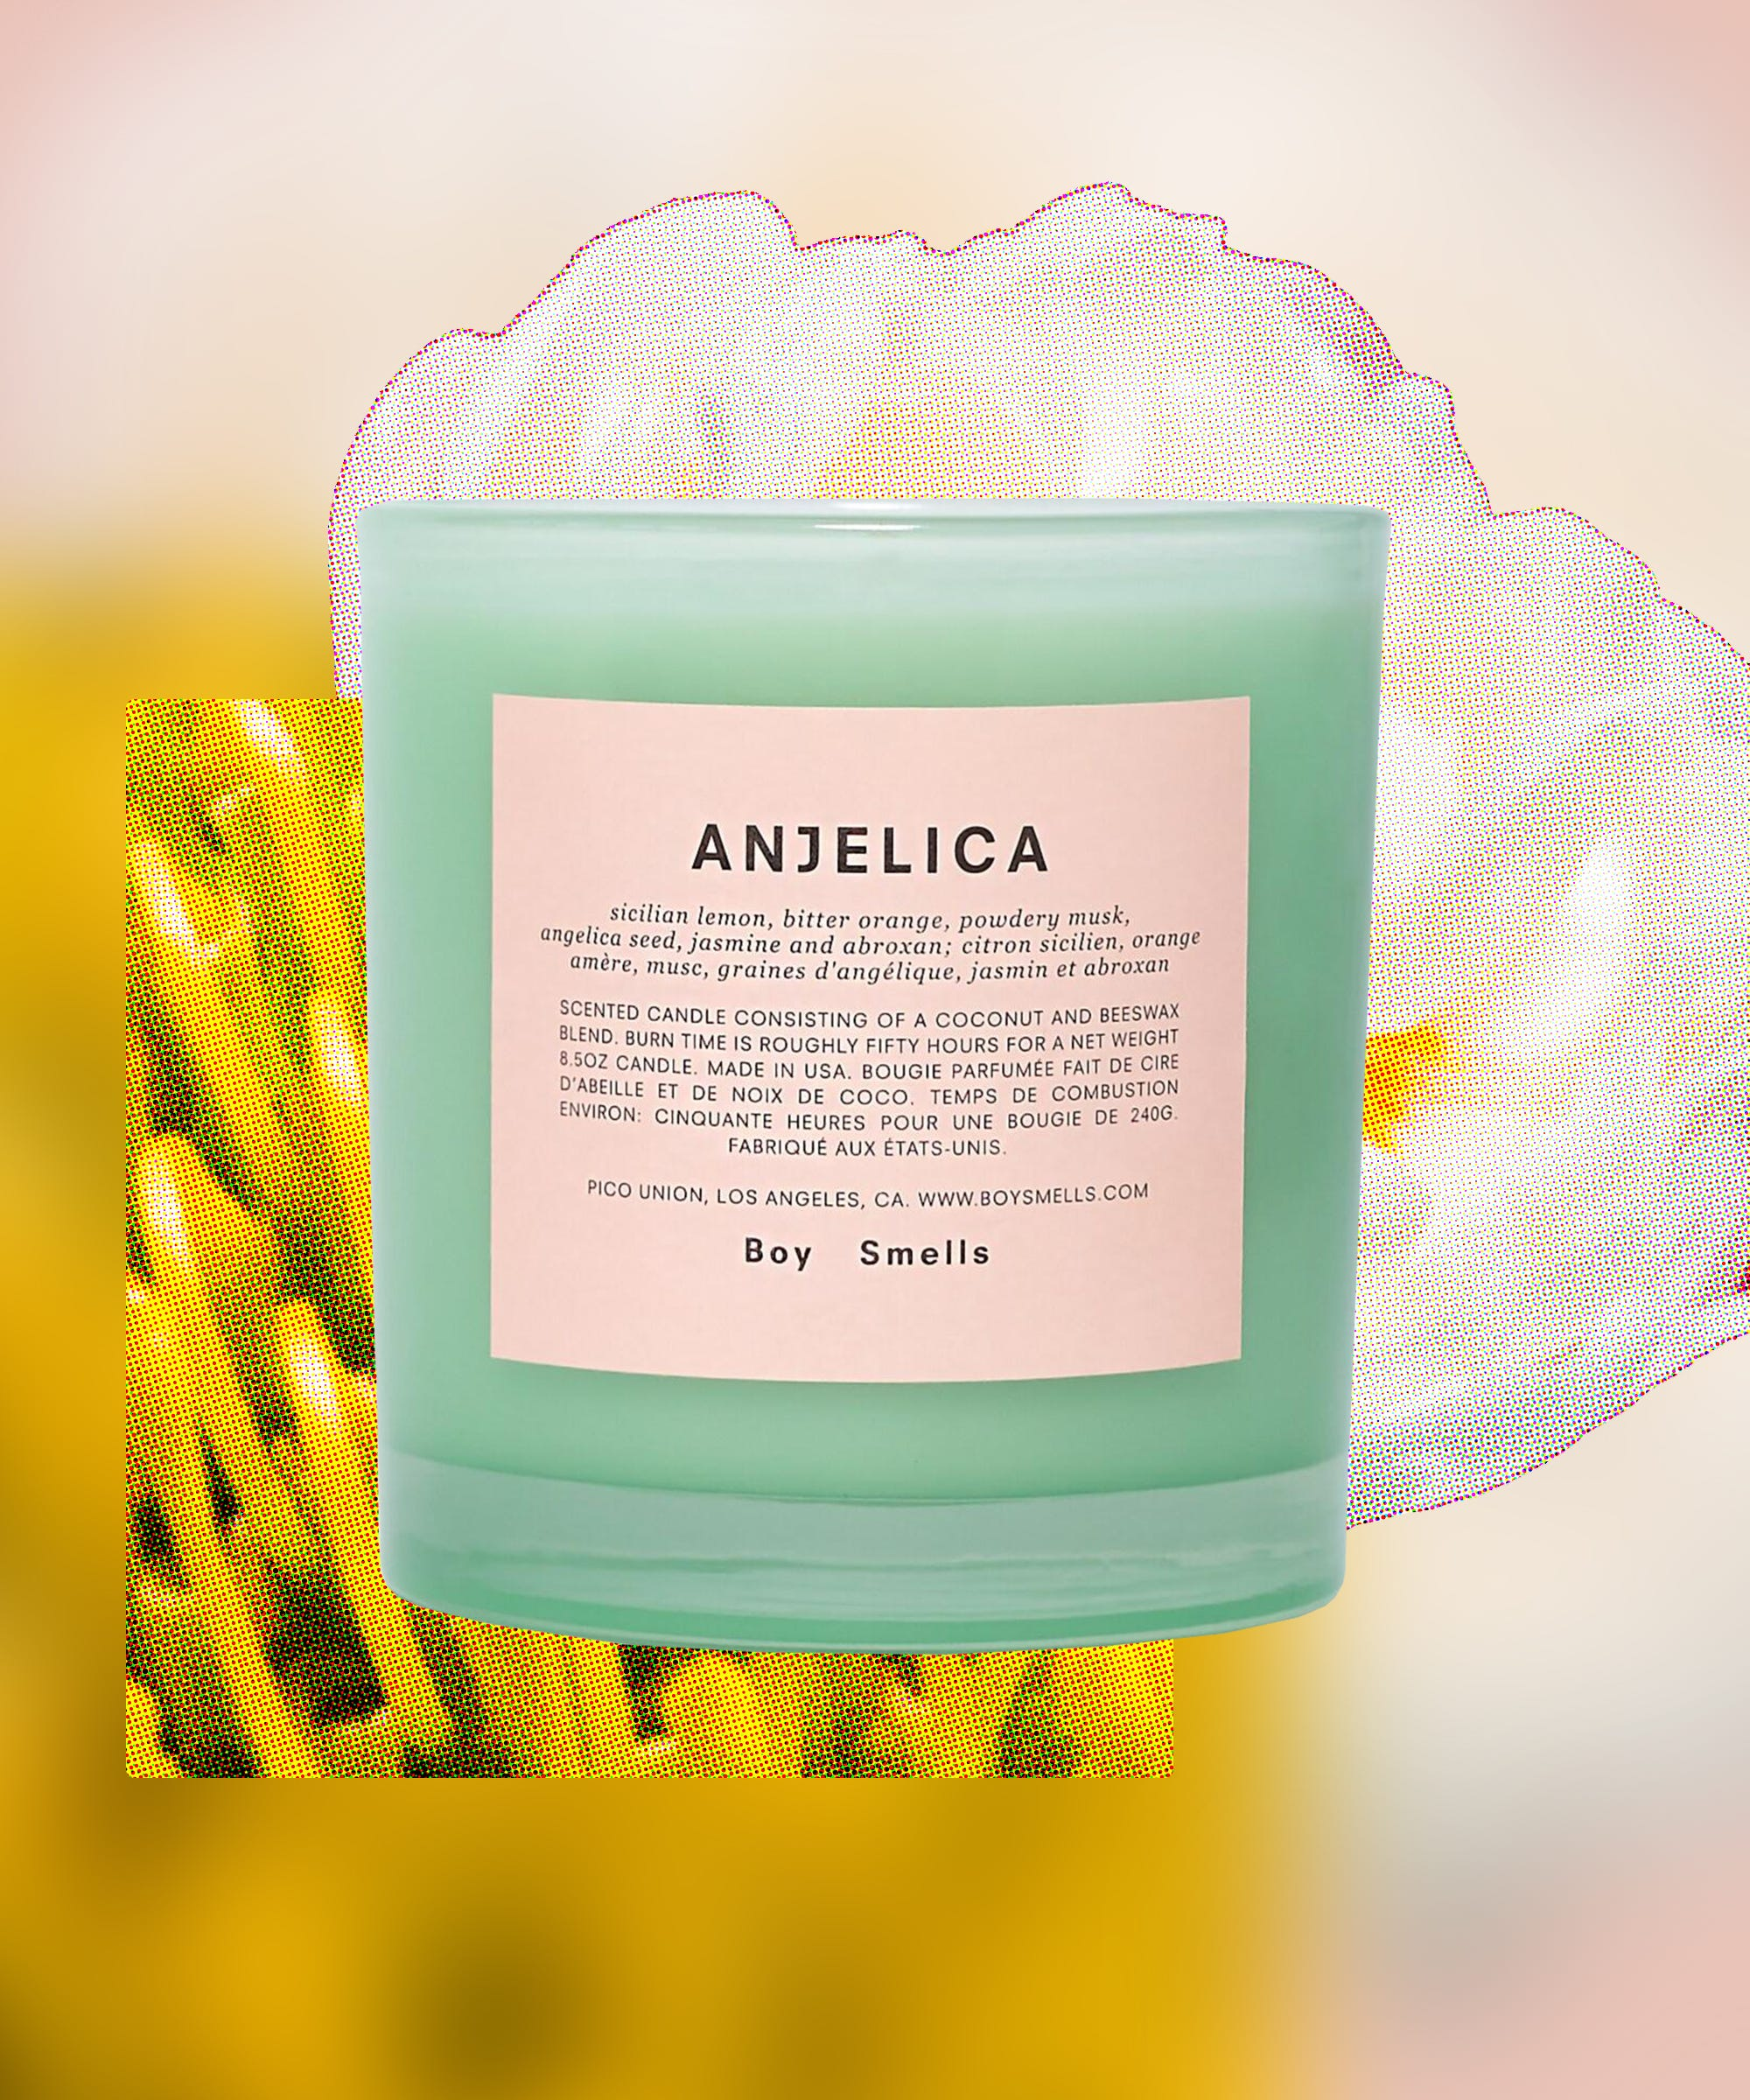 Barneys New York Is Giving Refinery29 Readers A Beauty Deal You'll Only Find Here